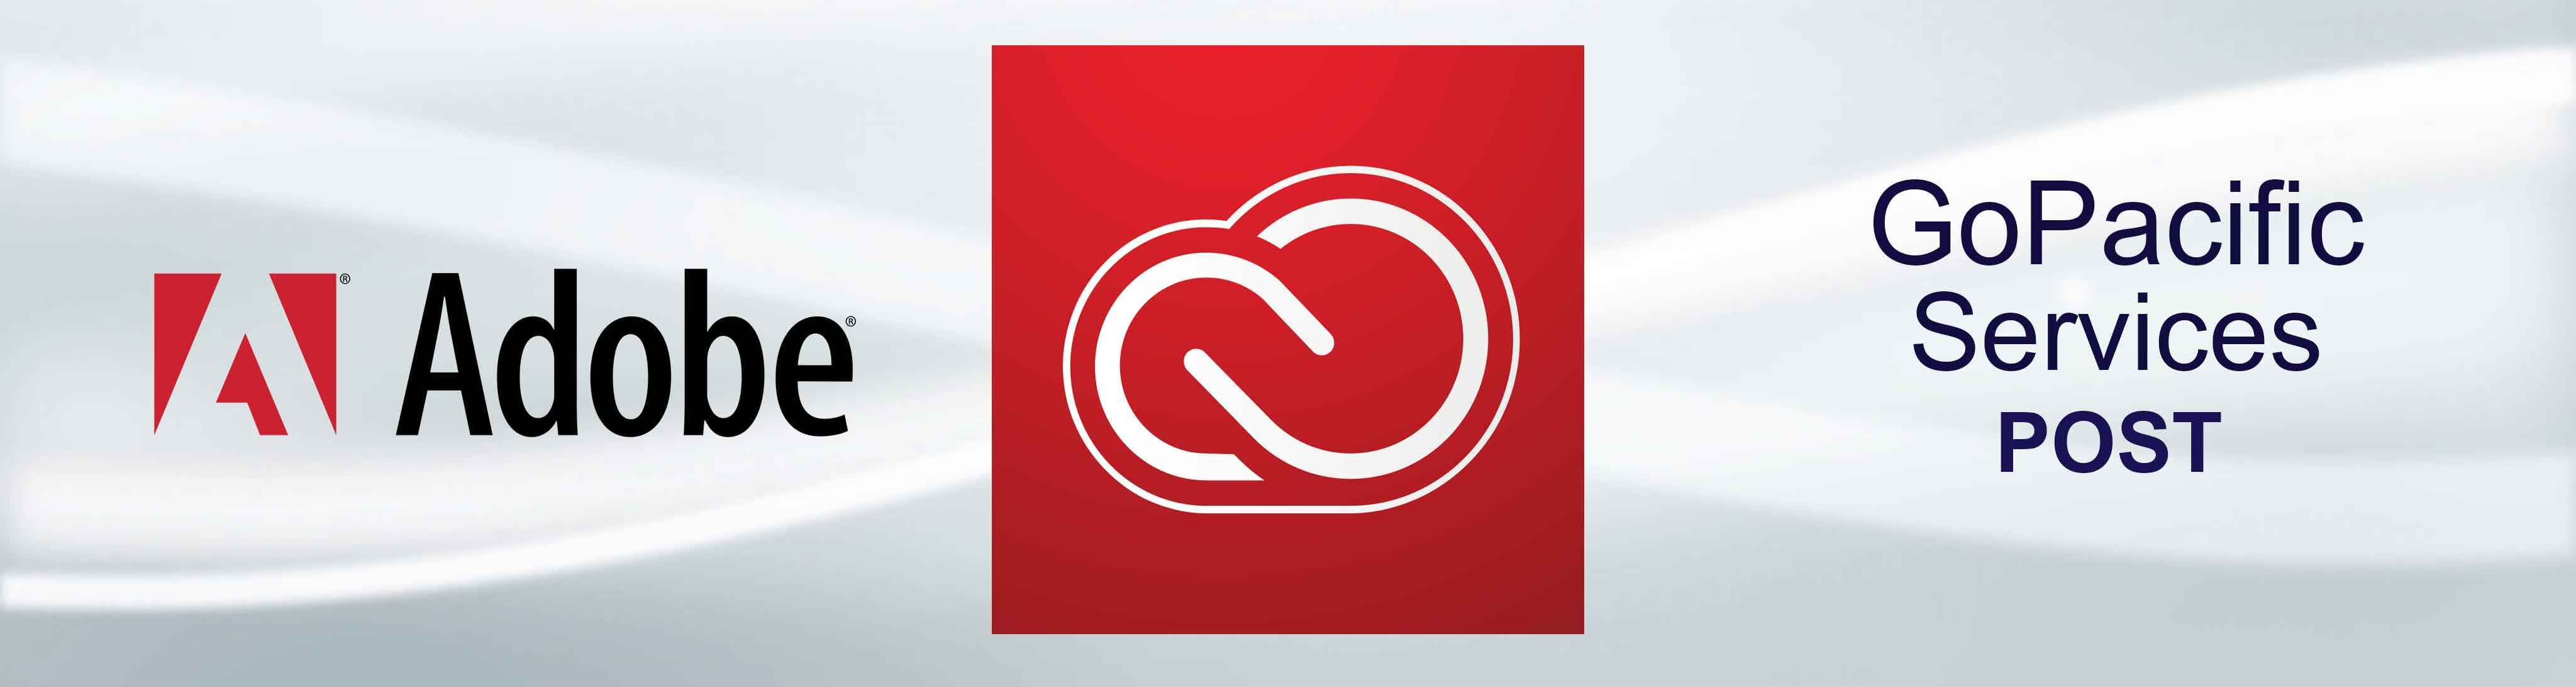 Download Trial Version Of Applications From Creative Cloud